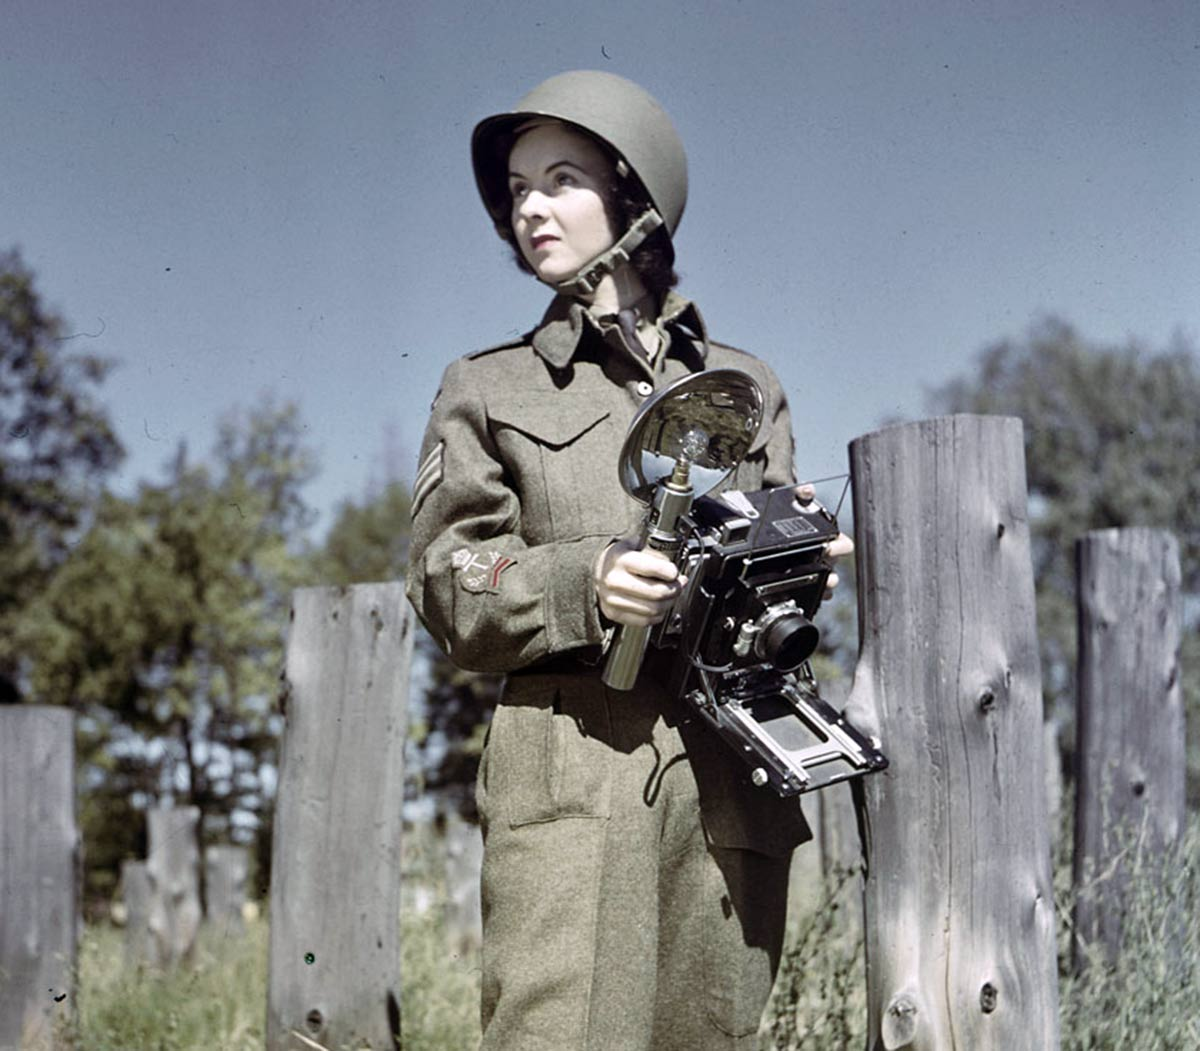 1940s-WW2-Women-of-Canada-cwac-karen-hermiston-1943